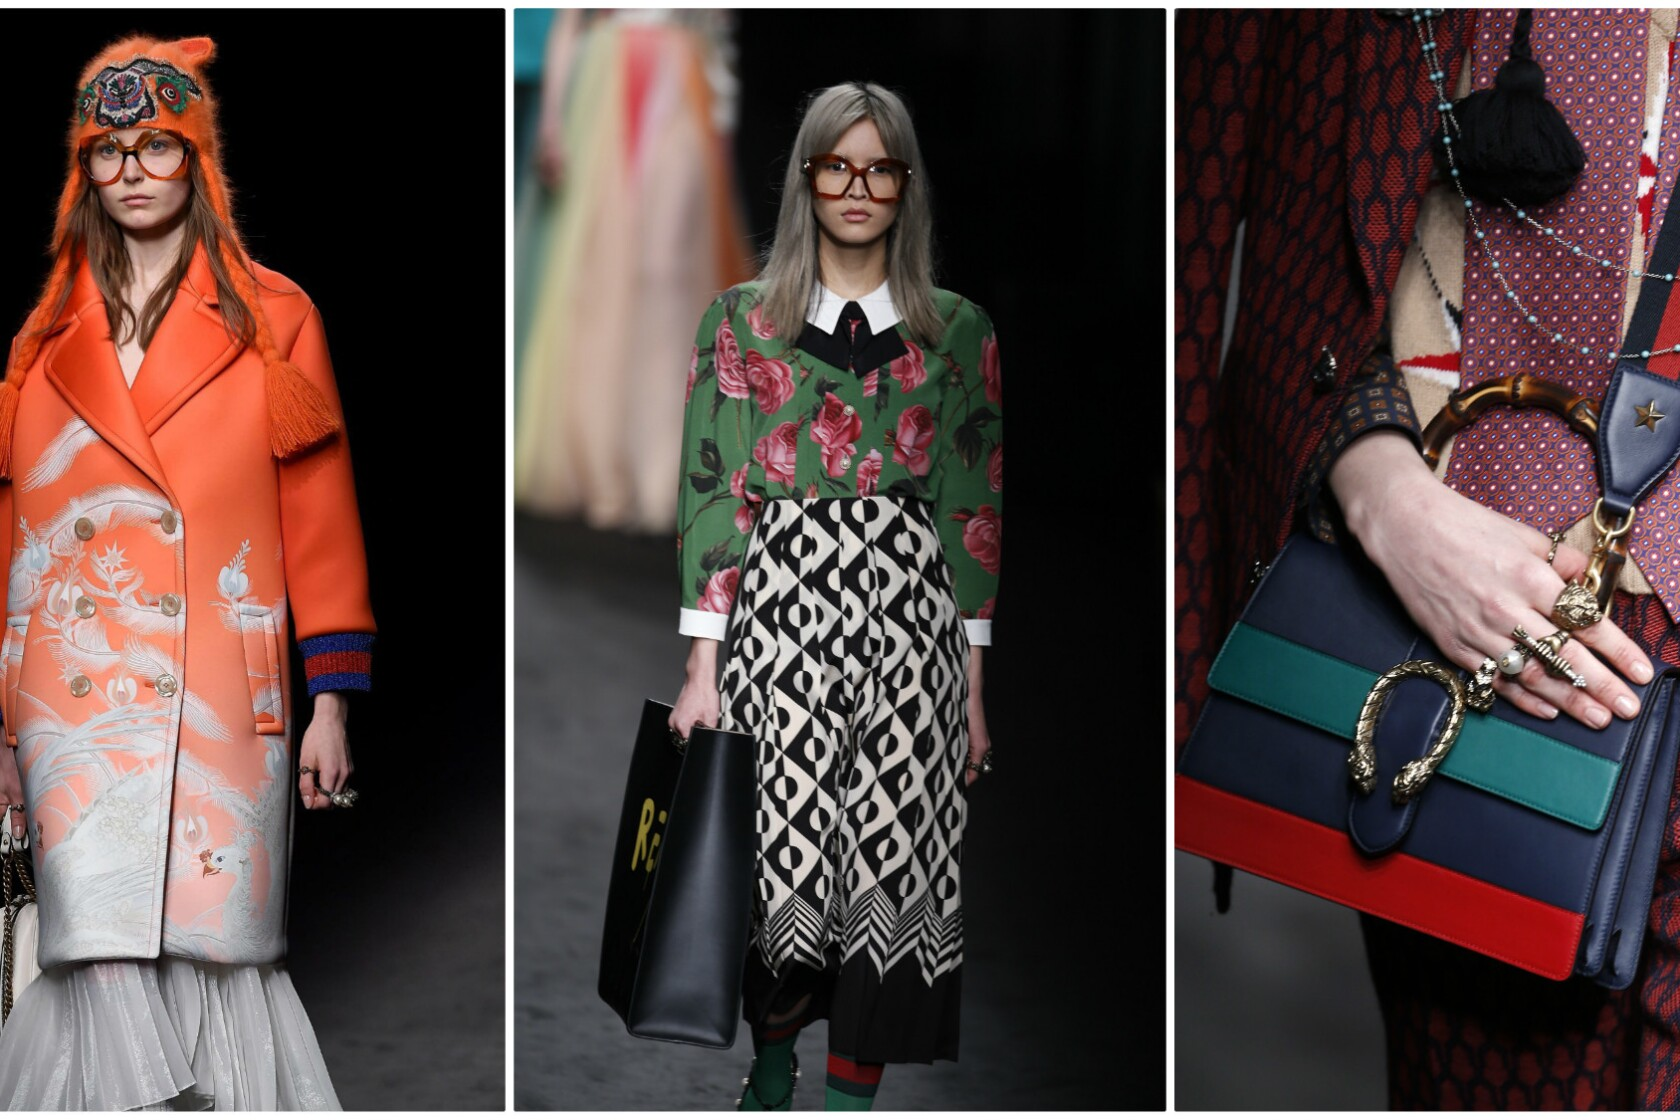 727473d33 Have you seen the new Gucci? Thank its latest creative director and ...